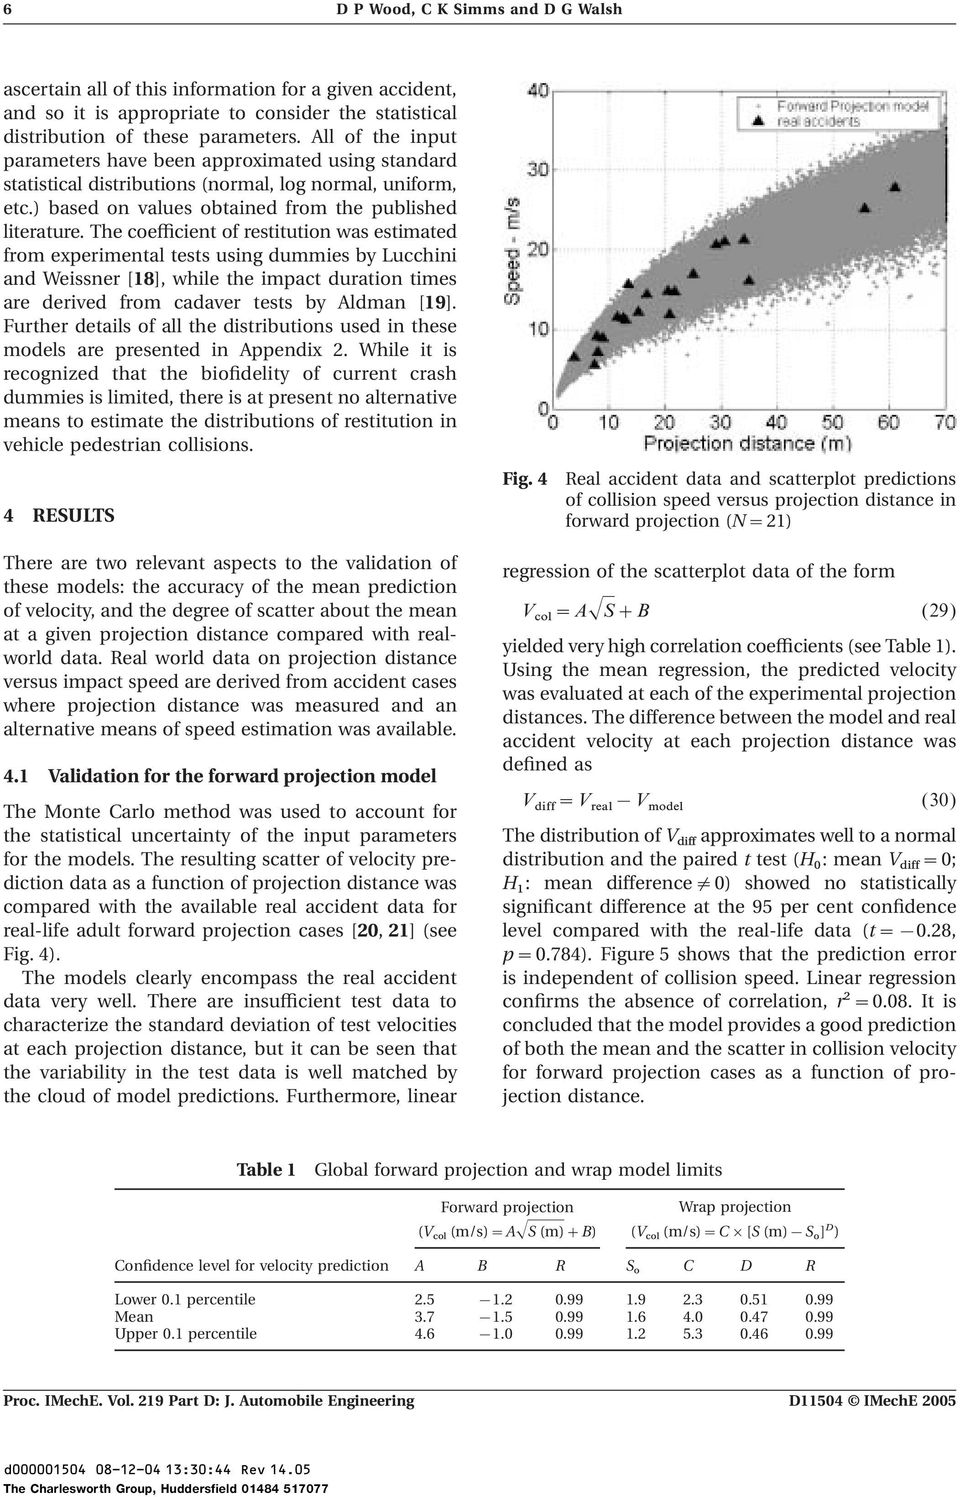 The coefficient of restitution was estimated from experimental tests using dummies by Lucchini and Weissner [18], while the impact duration times are derived from cadaver tests by Aldman [19].